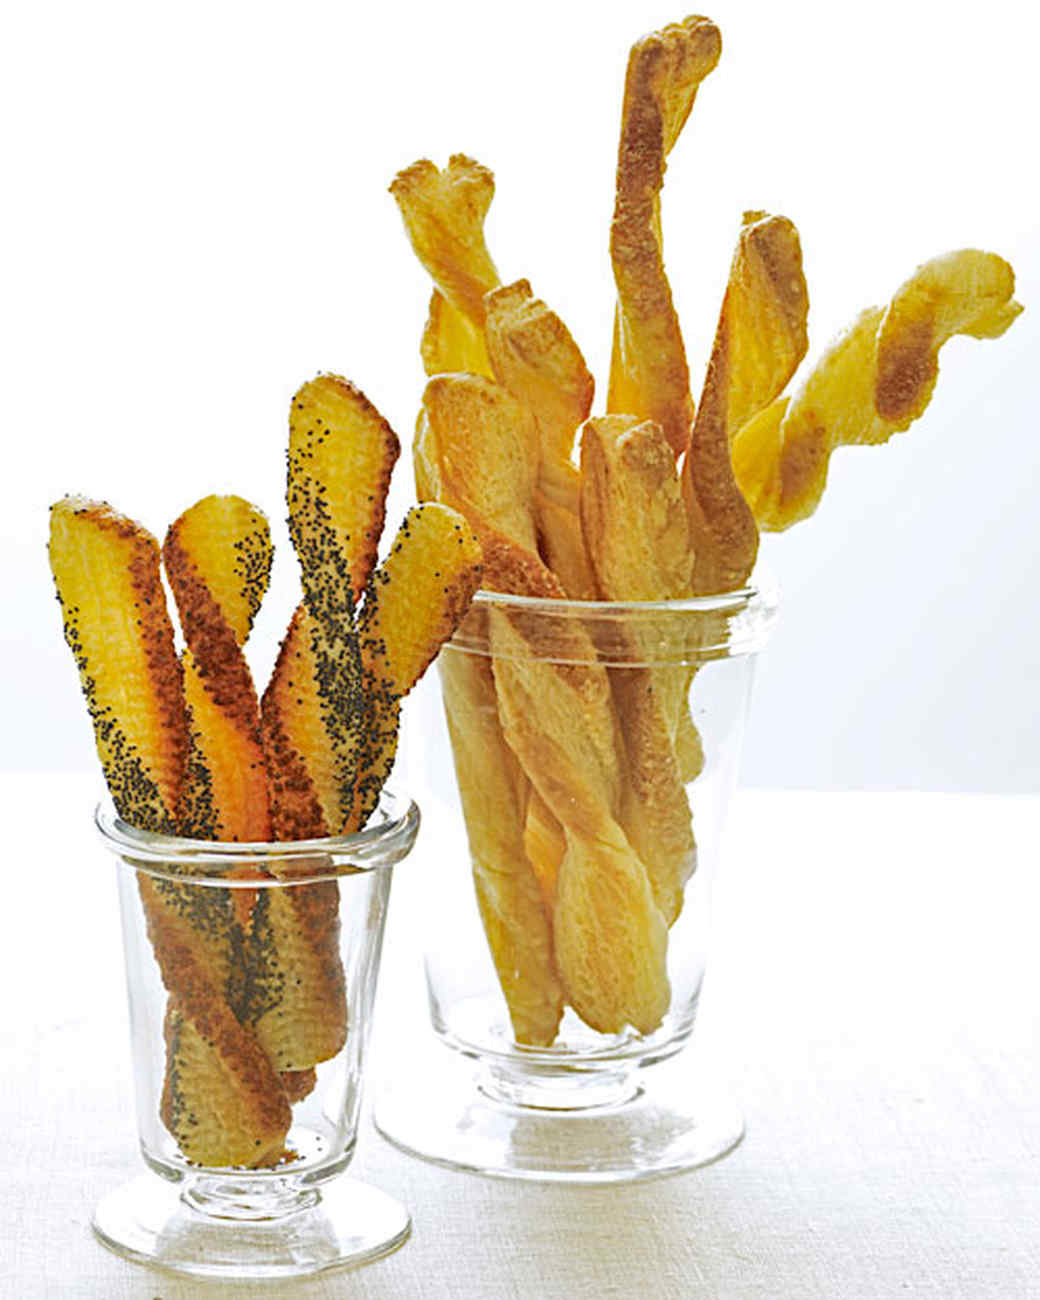 mb_1005_cheese_straws.jpg